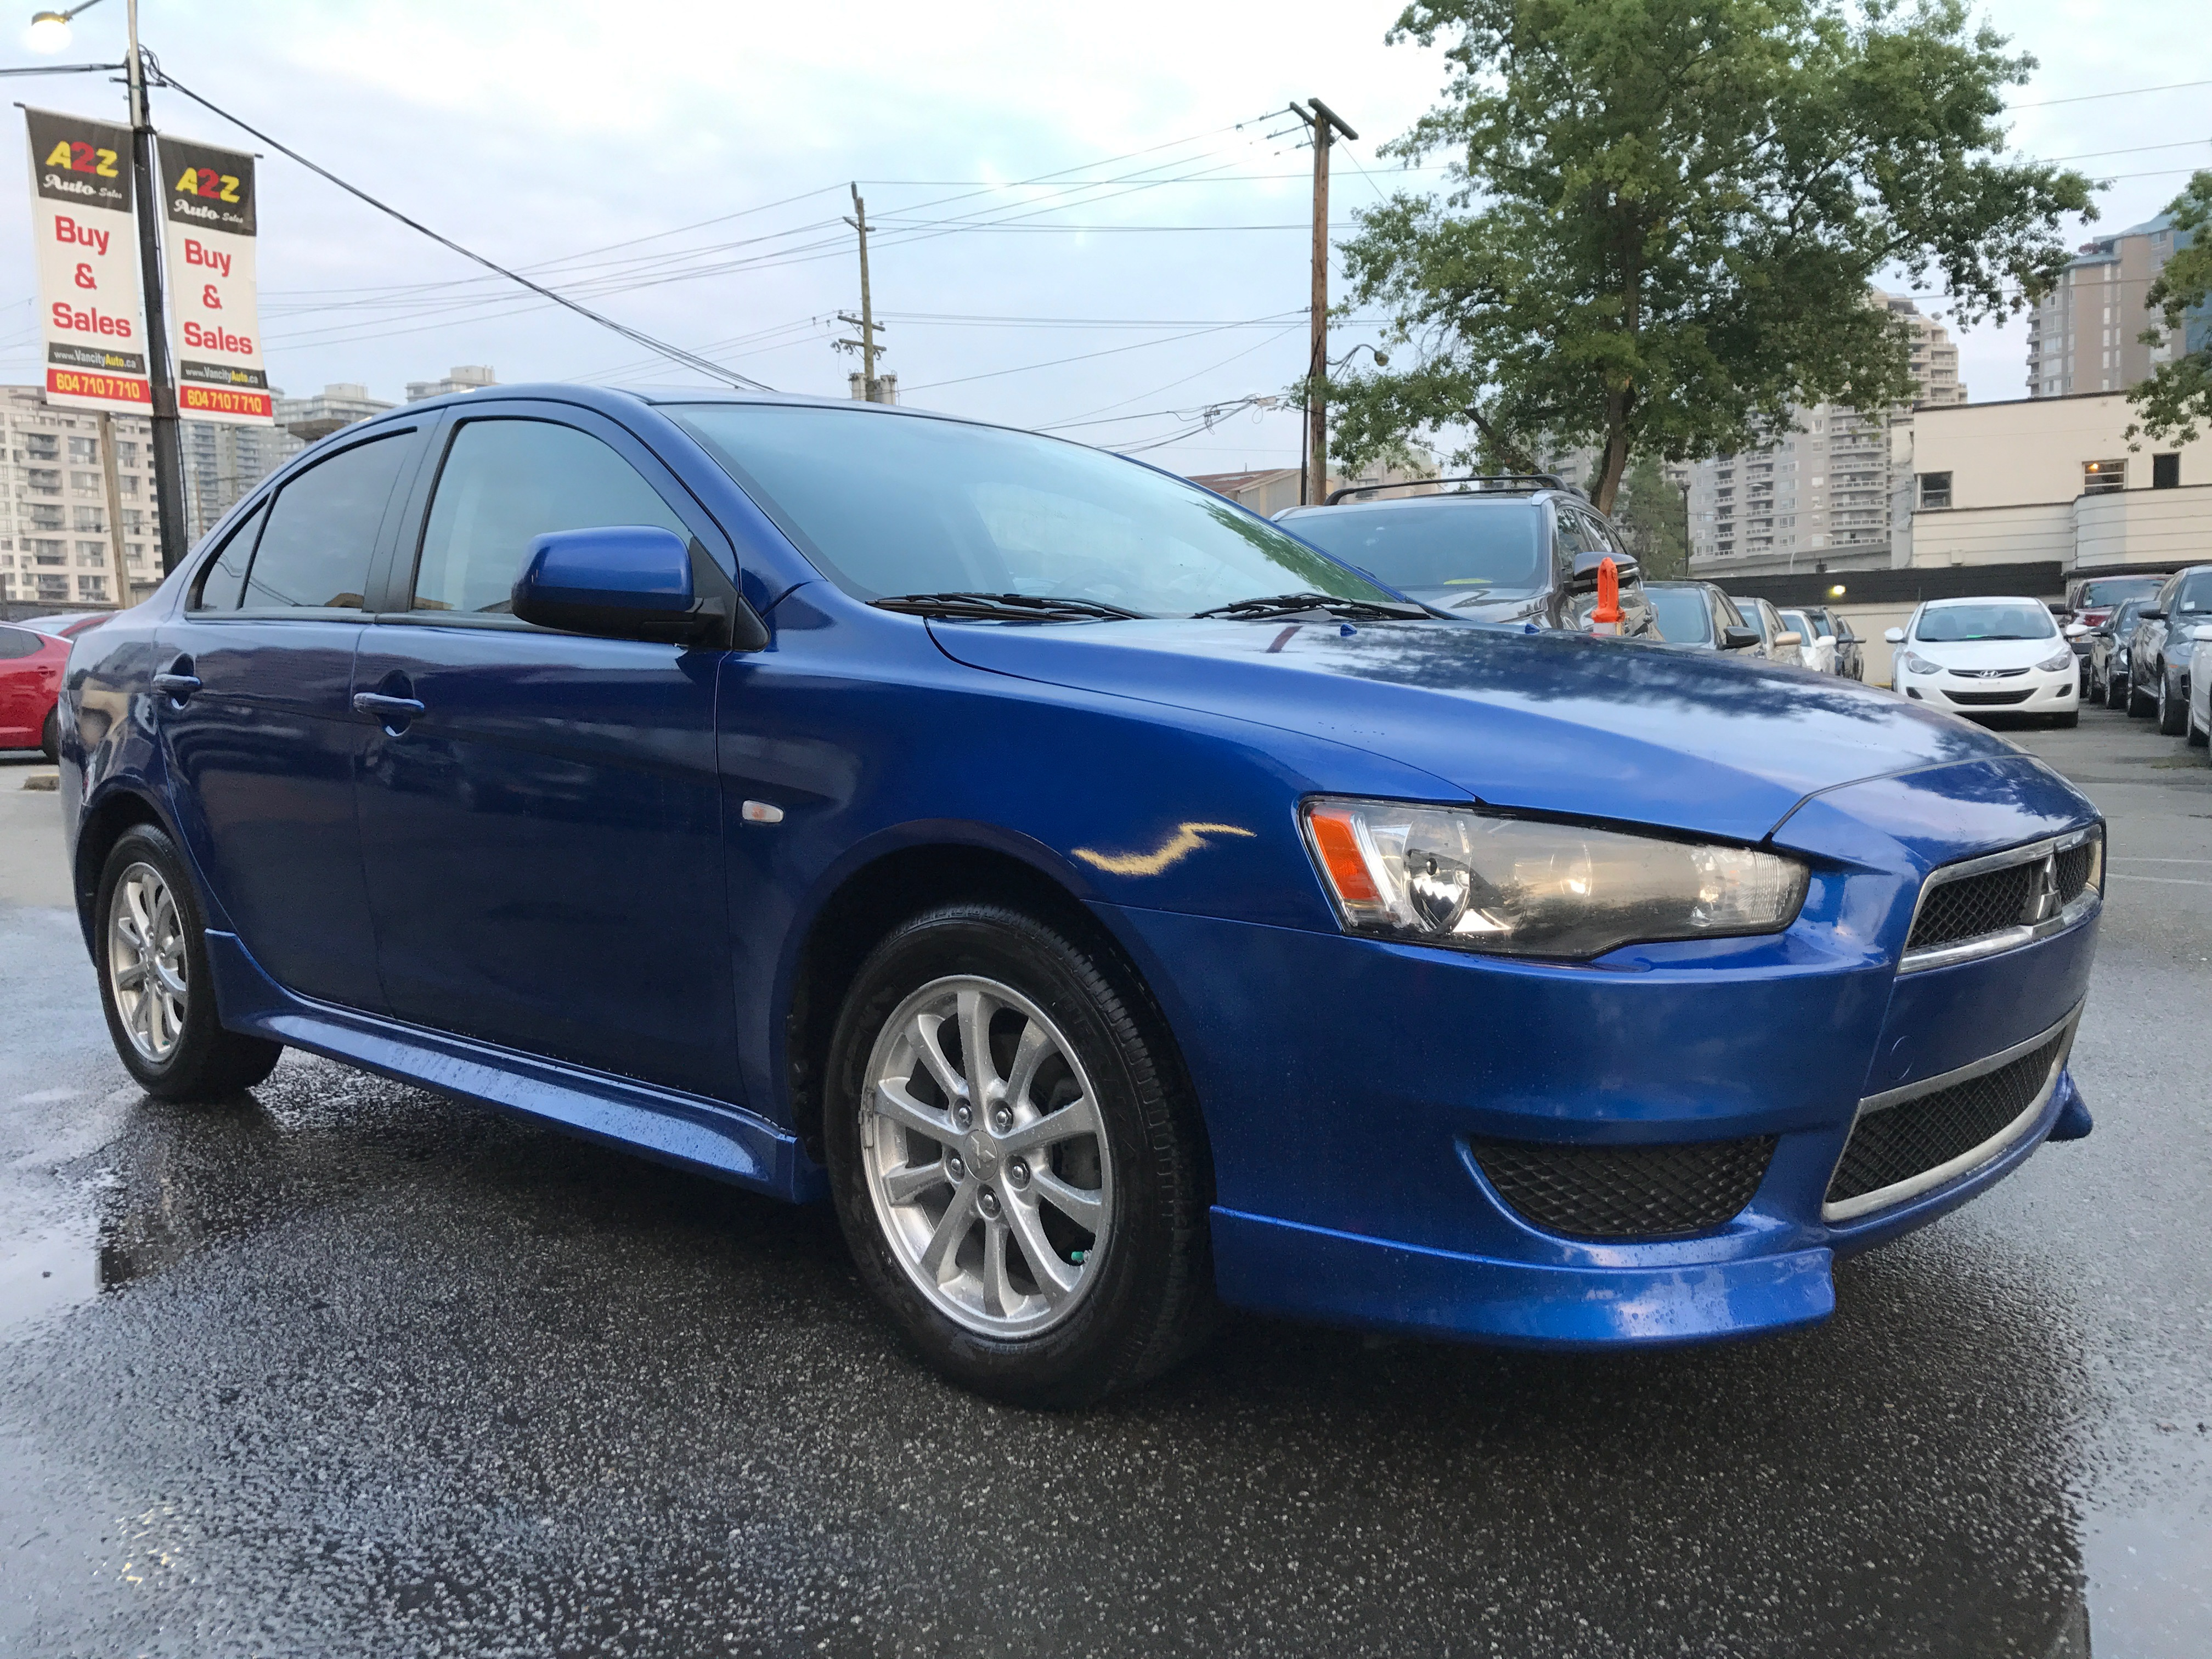 2012 mitsubishi lancer gt automatic no accident still under the warranty 9 999. Black Bedroom Furniture Sets. Home Design Ideas